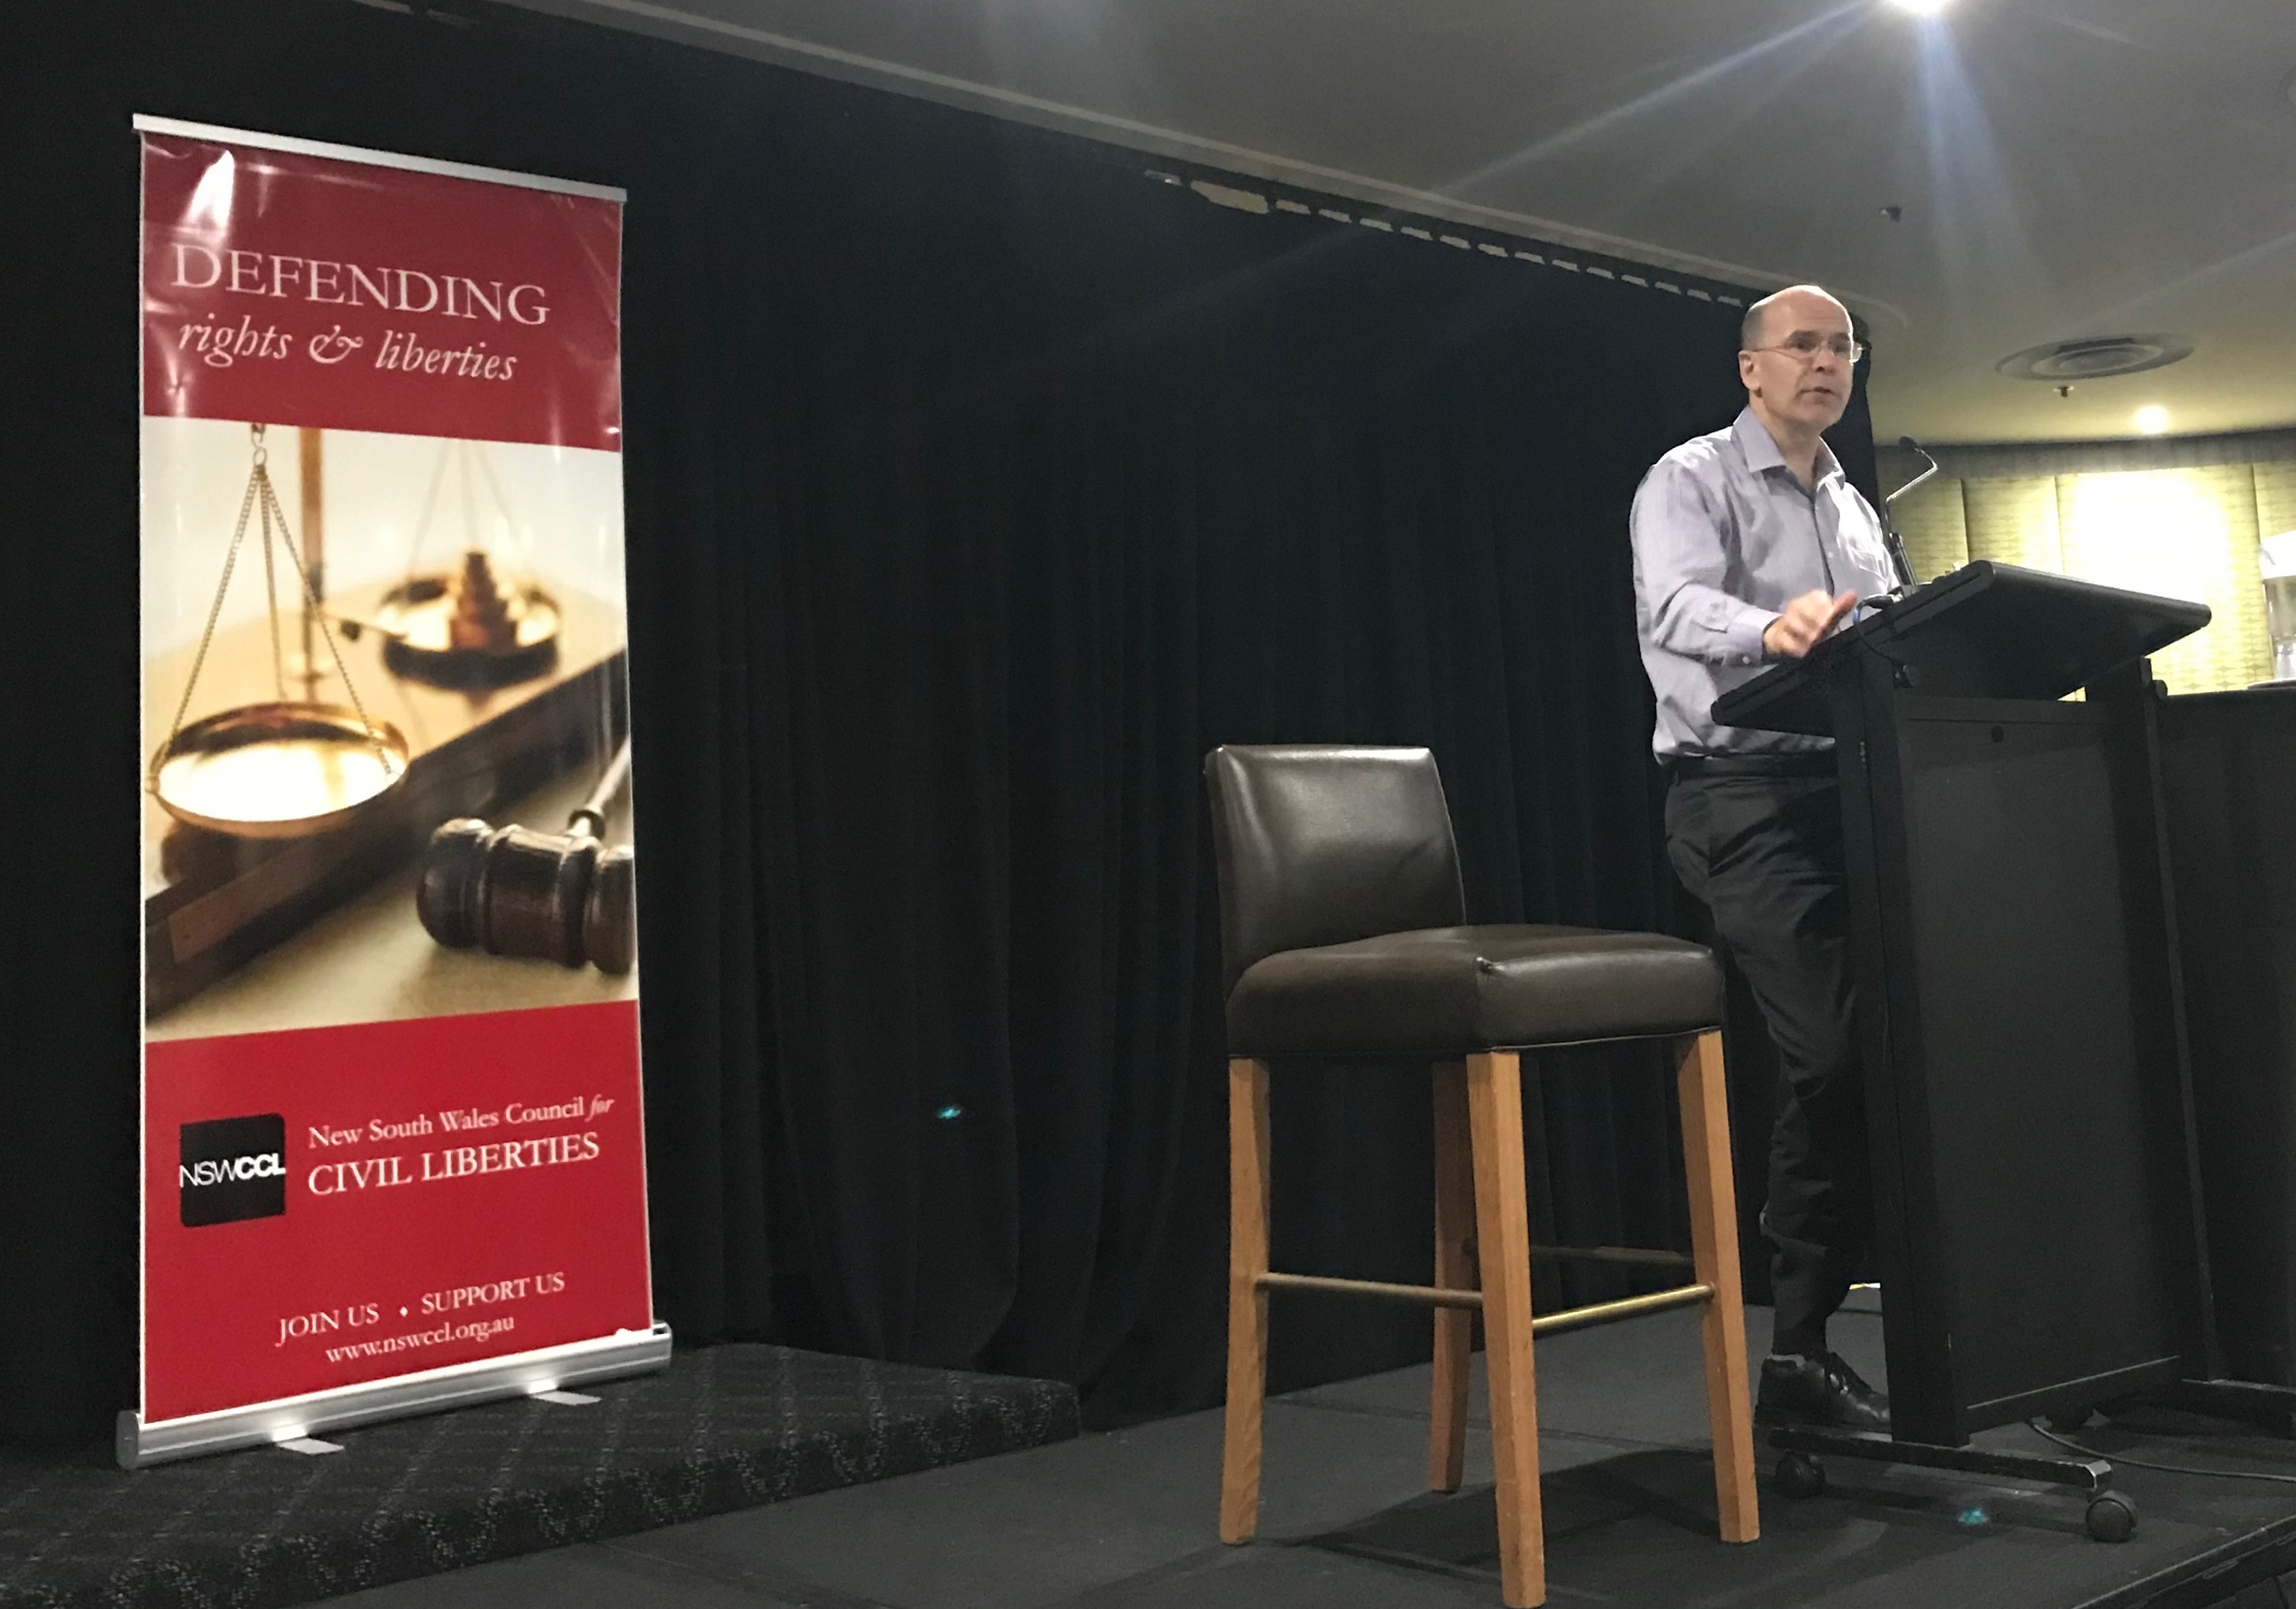 John Marsden speaking at 2018 John Marsden Lecture